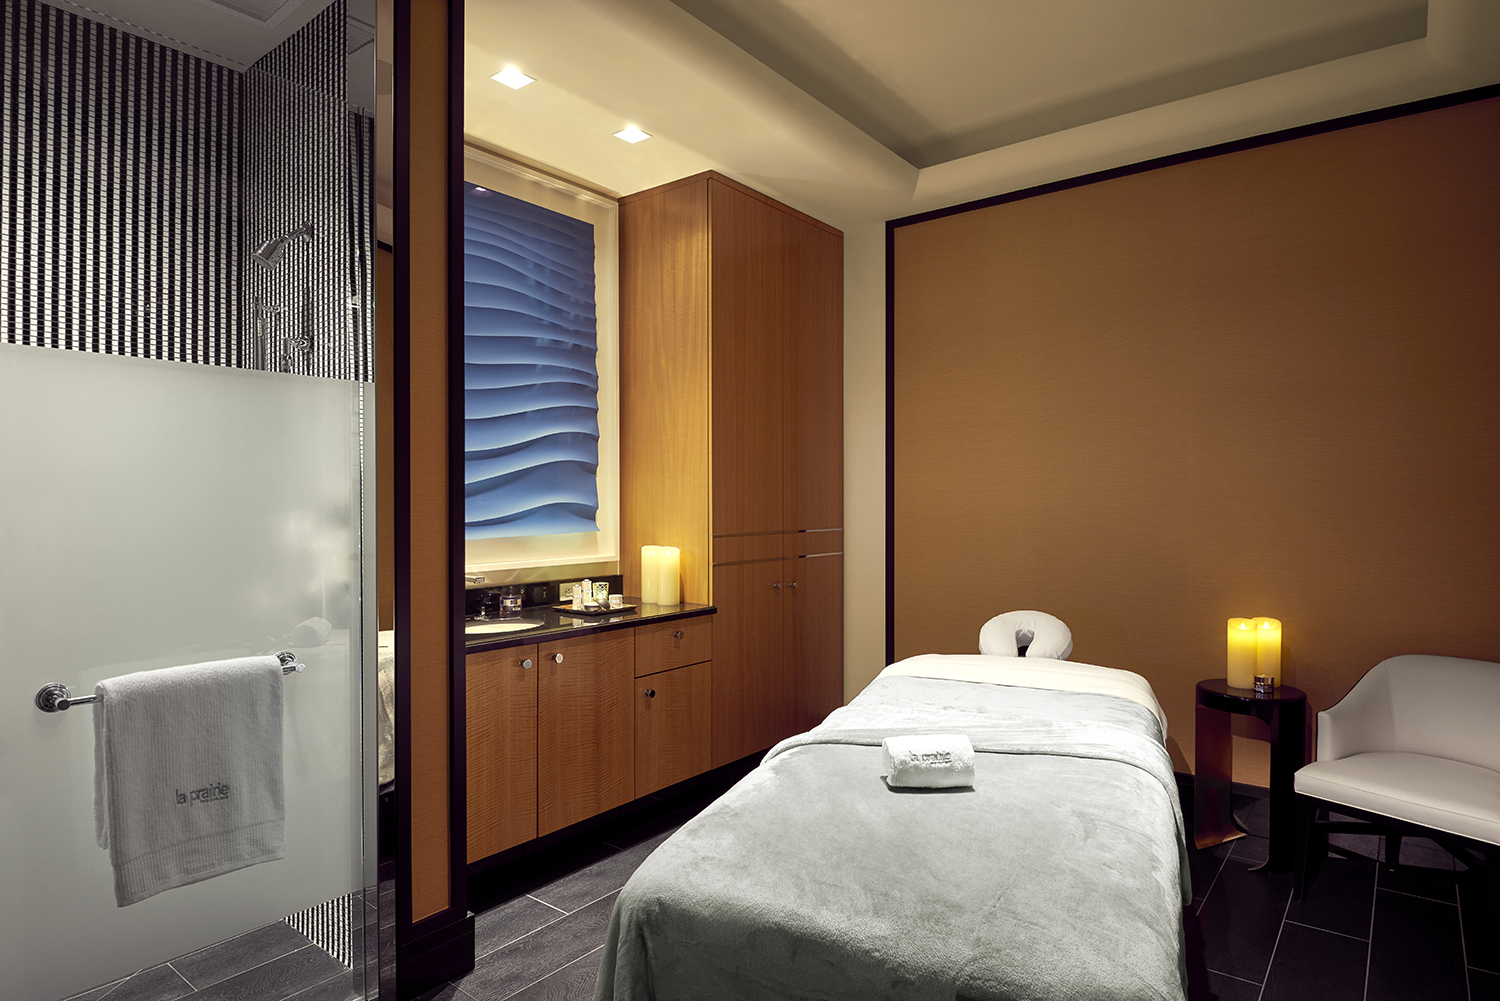 One of the luxuriously appointed treatment rooms at La Prairie Spa at Waldorf Astoria Beverly Hills.  [Image courtesy of Waldorf Astoria Beverly Hills]